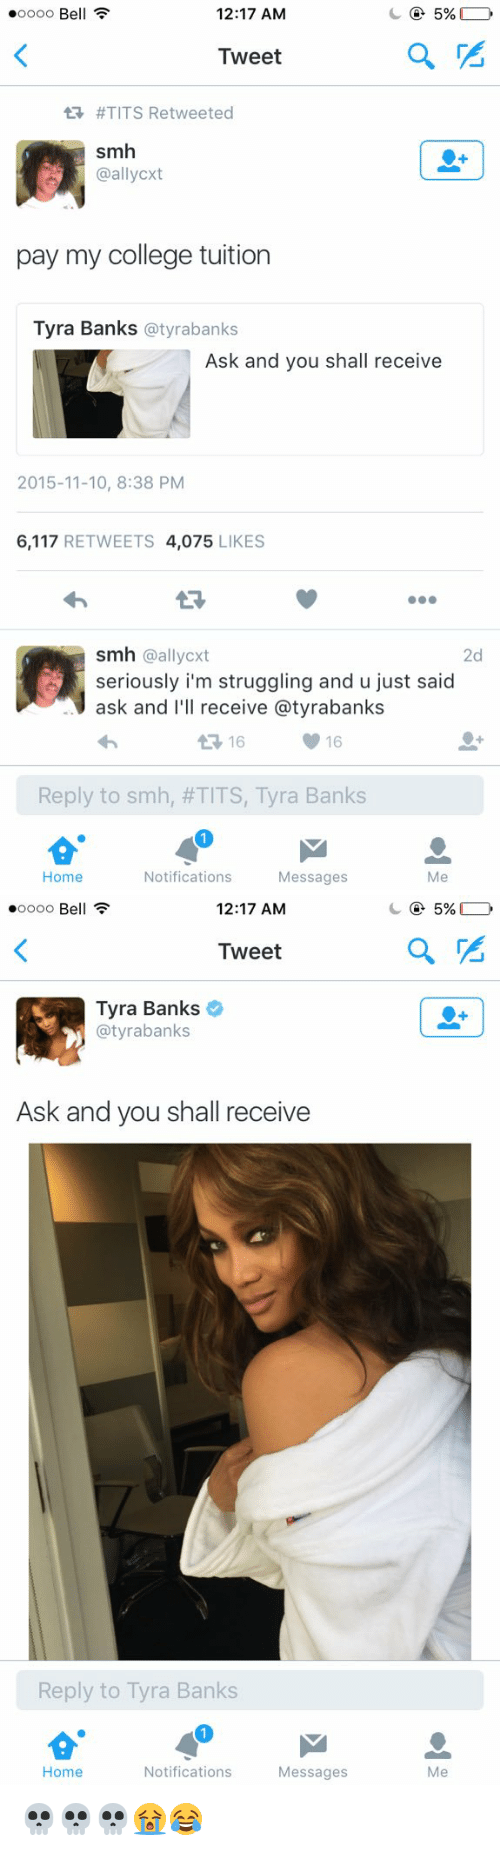 Blackpeopletwitter, College, and Smh: .oooo Be  5%  12:17 AM  Tweet  tR #TITS Retweeted  smh  pay my college tuition  Tyra Banks  @tyrabanks  Ask and you shall receive  2015-11-10, 8:38 PM  6,117  RETWEETS 4.075  LIKES  smh @allycxt  2d  seriously i'm struggling and u just said  ask and  I'll receive a tyrabanks  16  Reply to smh, #TITS, Tyra Banks  Home  Notifications Messages  Me   .oooo Be  12:17 AM  Tweet  Tyra Banks  @tyra banks  Ask and you shall receive  Reply to Tyra Banks  Home  Notifications Messages  5%  a 💀💀💀😭😂